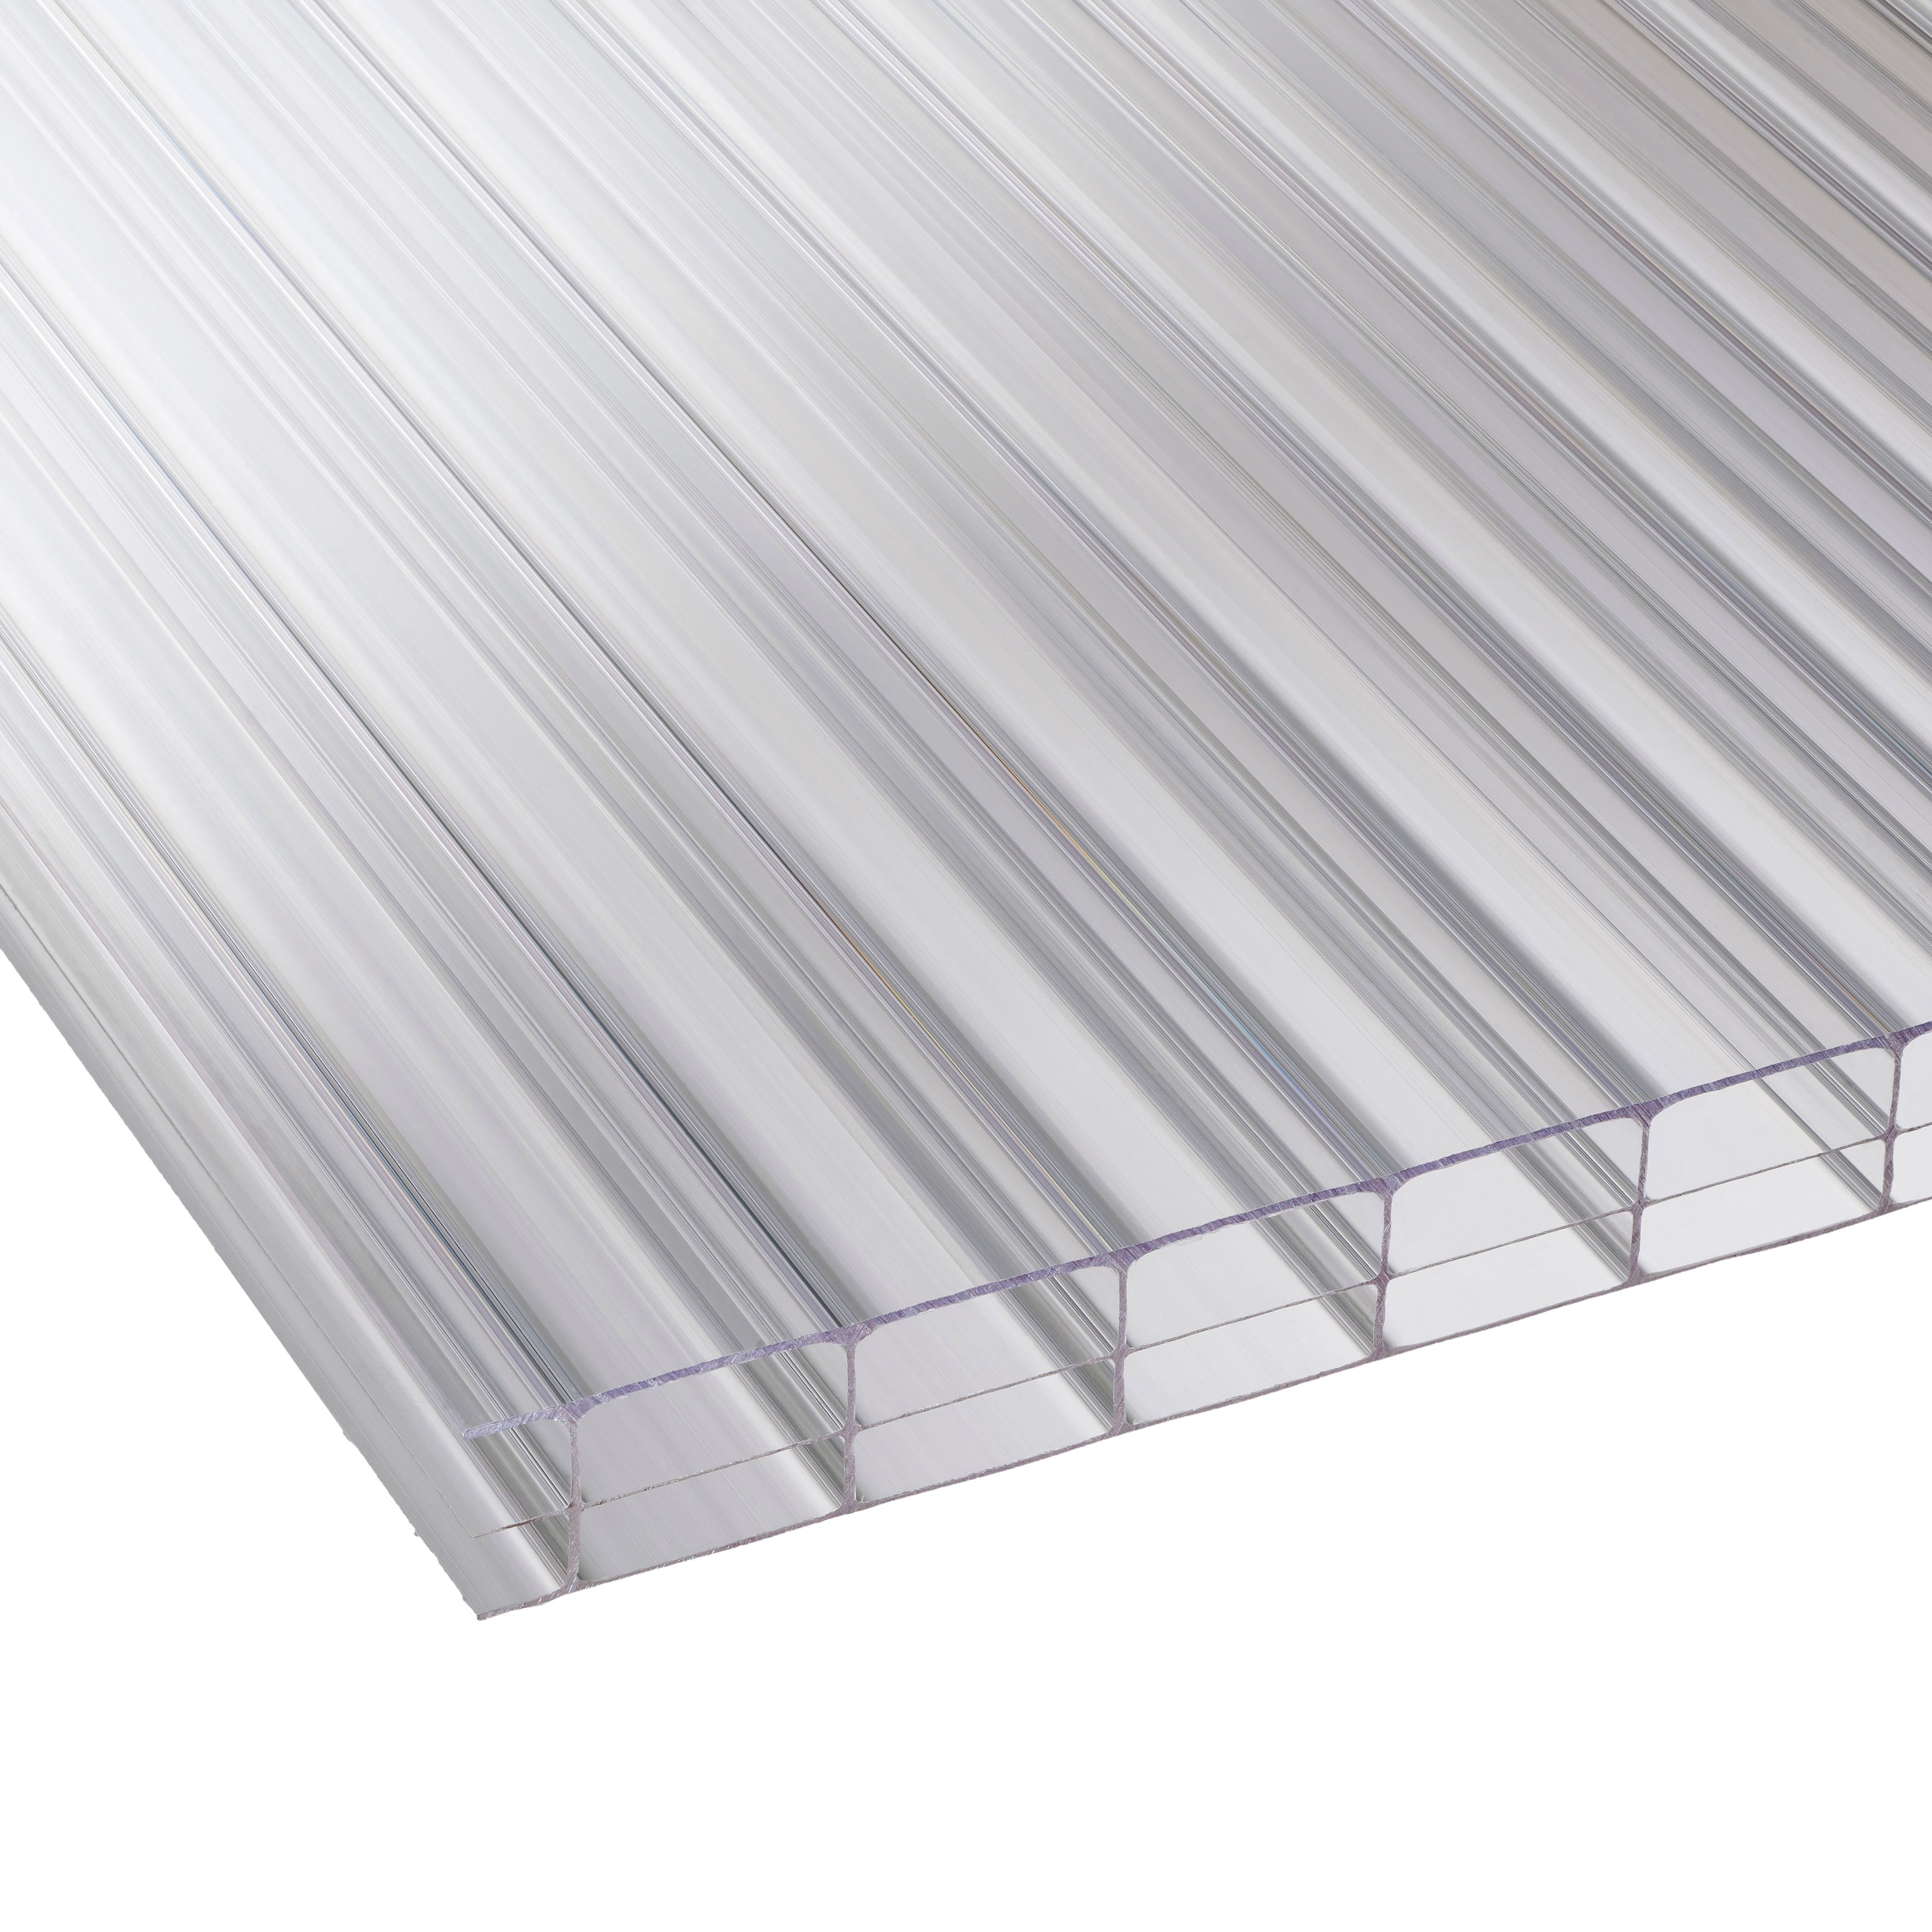 Clear Multiwall Polycarbonate Roofing Sheet 2.5m X 980mm, Pack Of 5